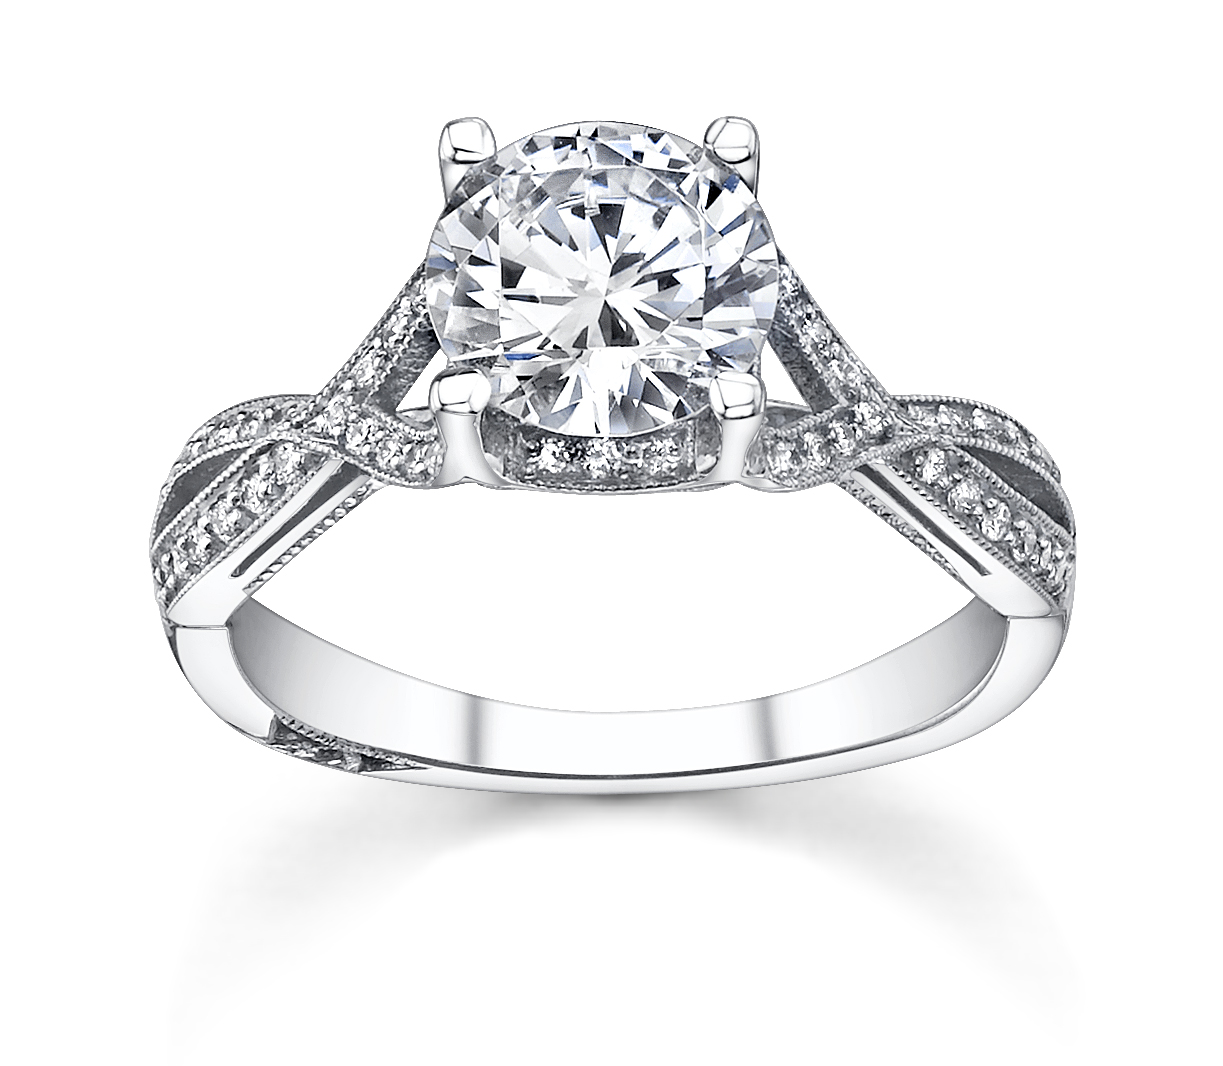 Robbins Brothers Engagement Rings, Proposals